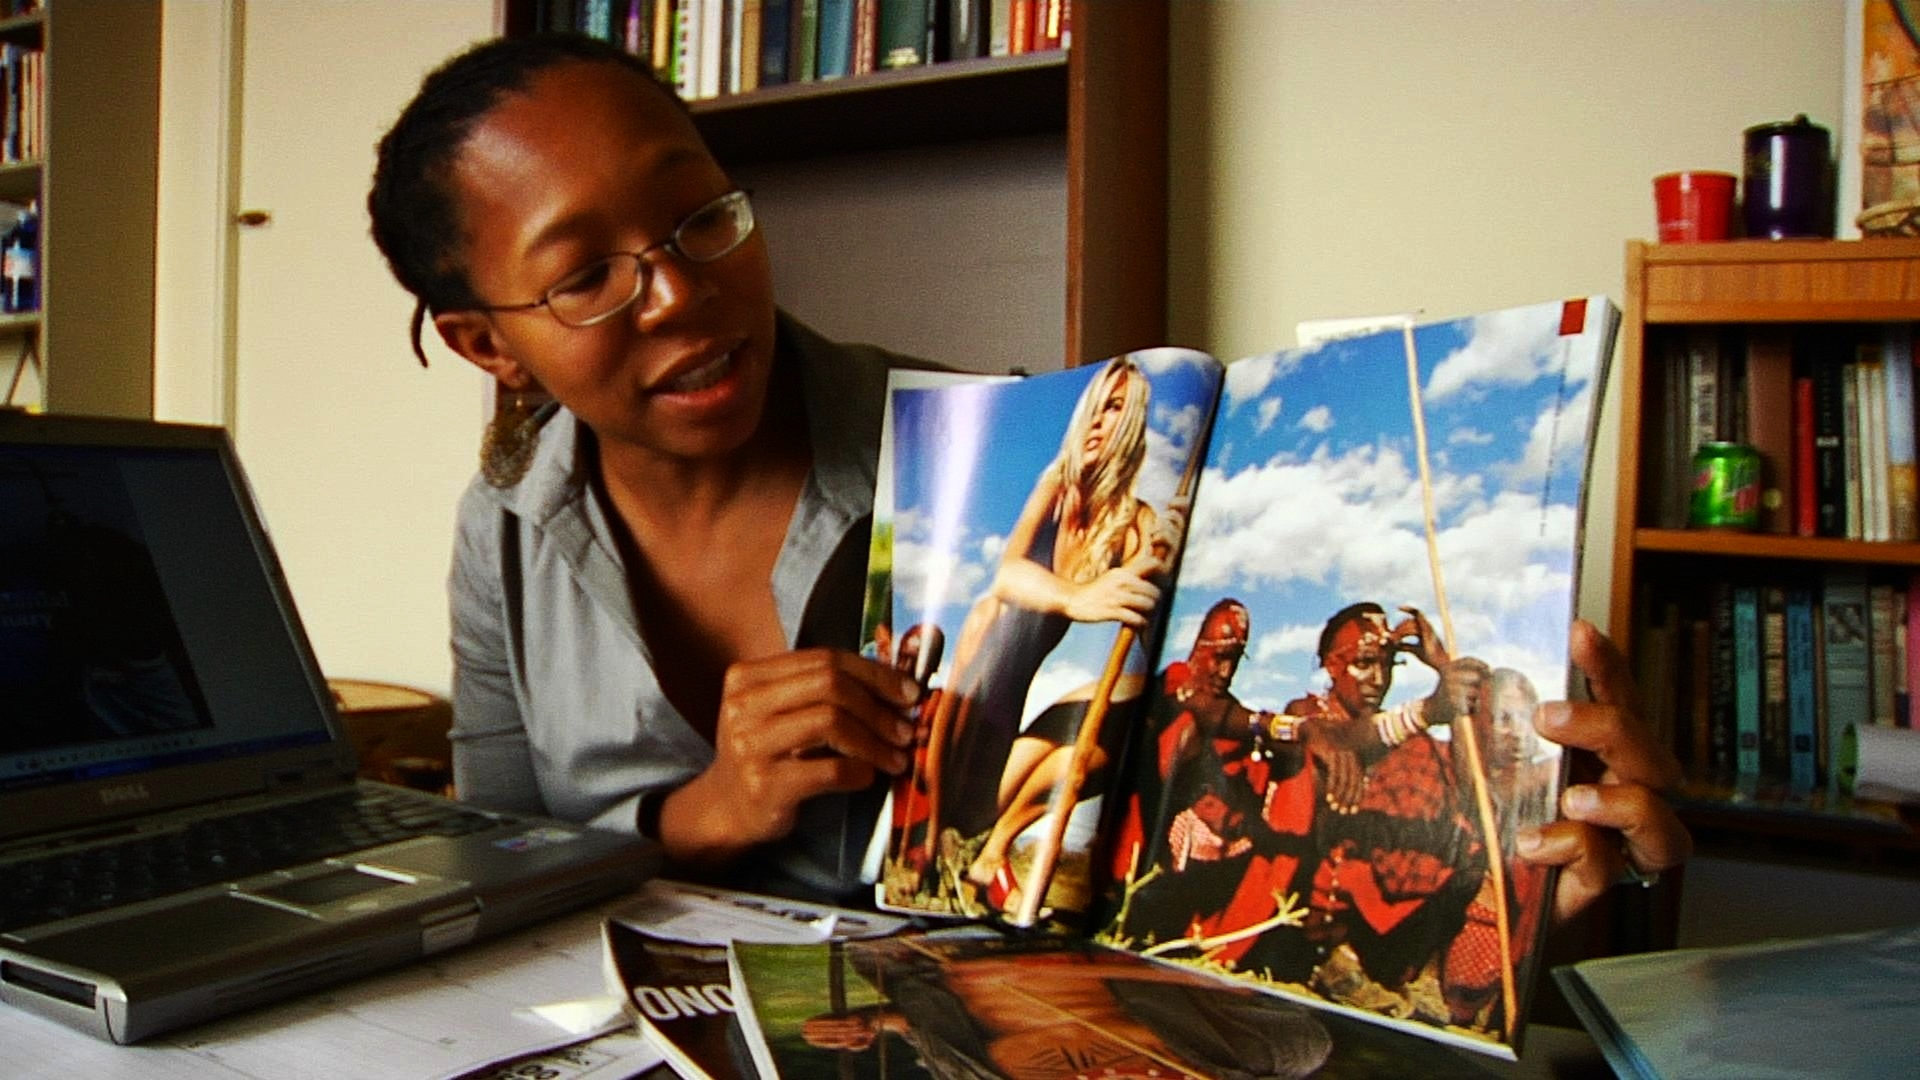 ZINE MAGUBANE, pop culture archivist and educator, flashes back in time to unpack colonial and current images of Africa in the west. She shows their power to define and dehumanize, and reveals how little has changed over time.